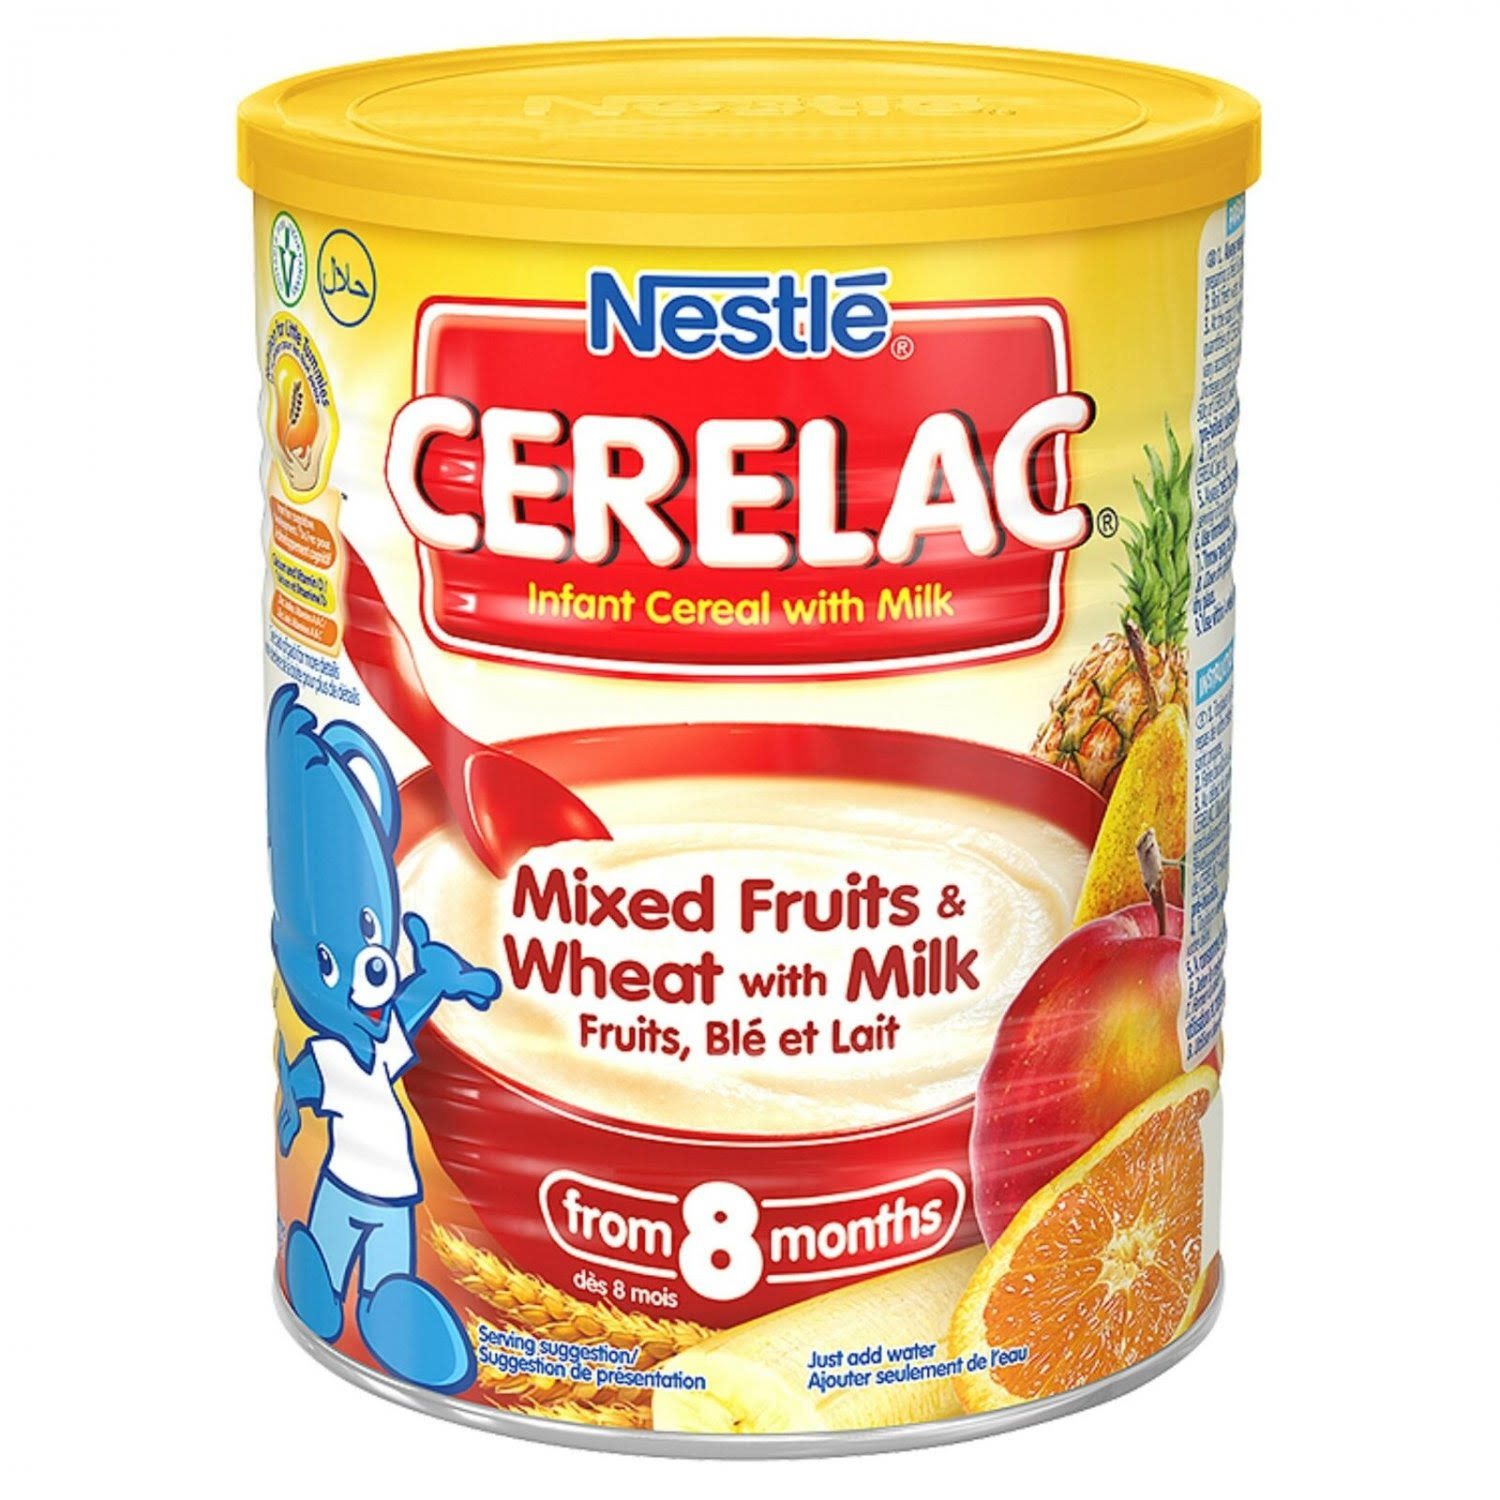 Cerelac Mixed Fruits & Wheat Fruits Blé with Milk from 7 Months - 400g